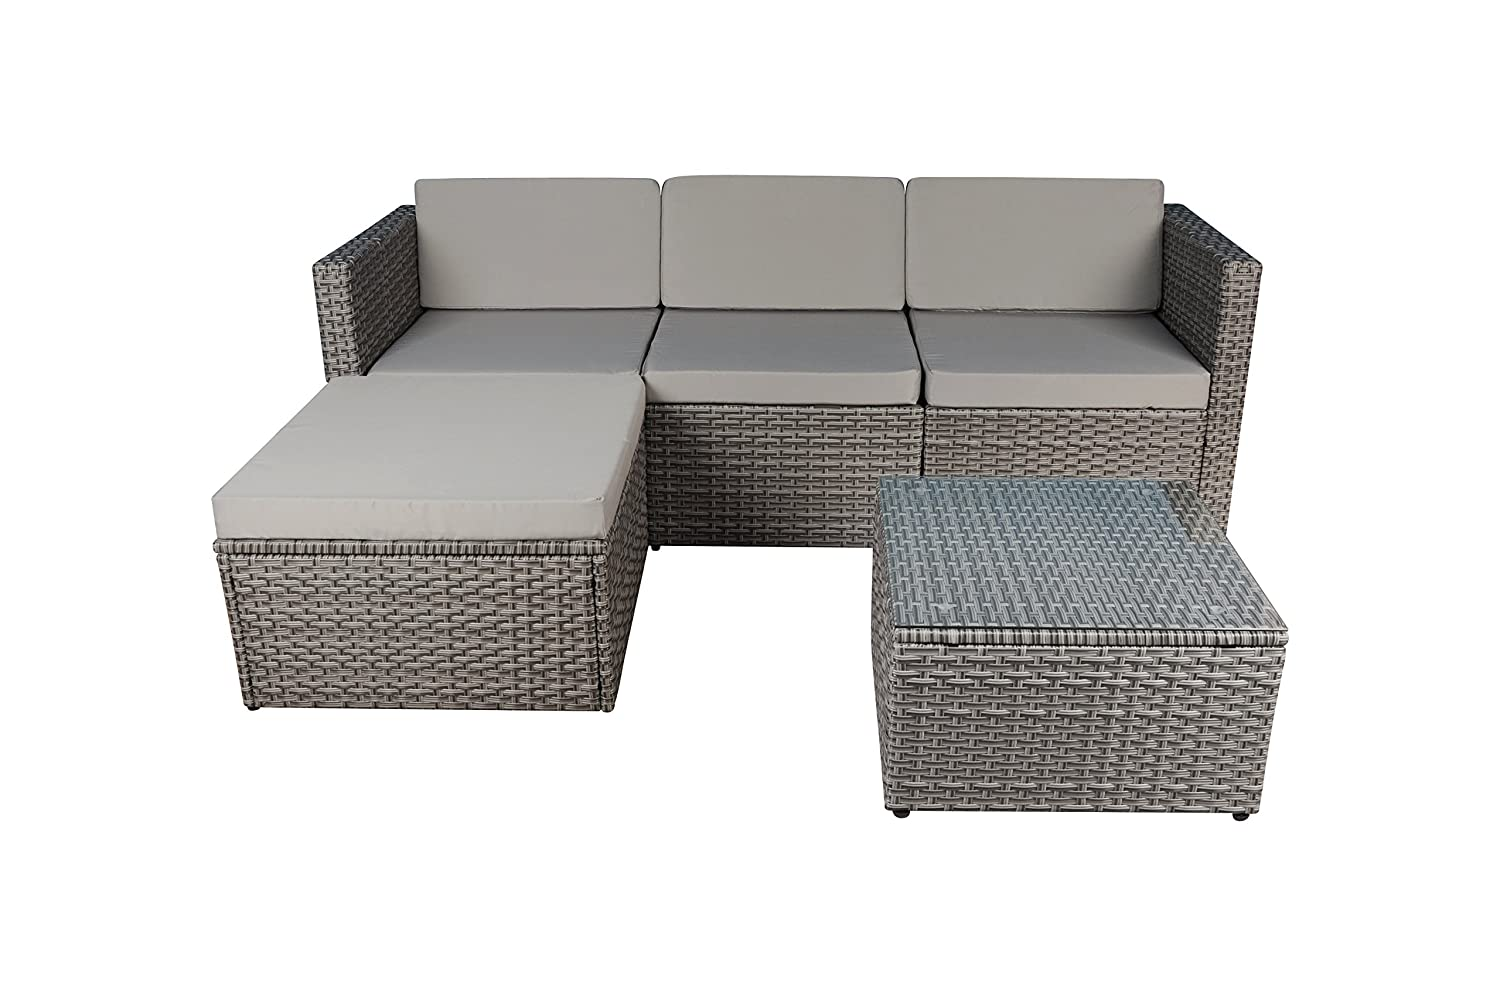 Modern Outdoor Garden, Sectional Sofa Set with Coffee Table - Wicker Sofa  Furniture Set (Grey/Grey)